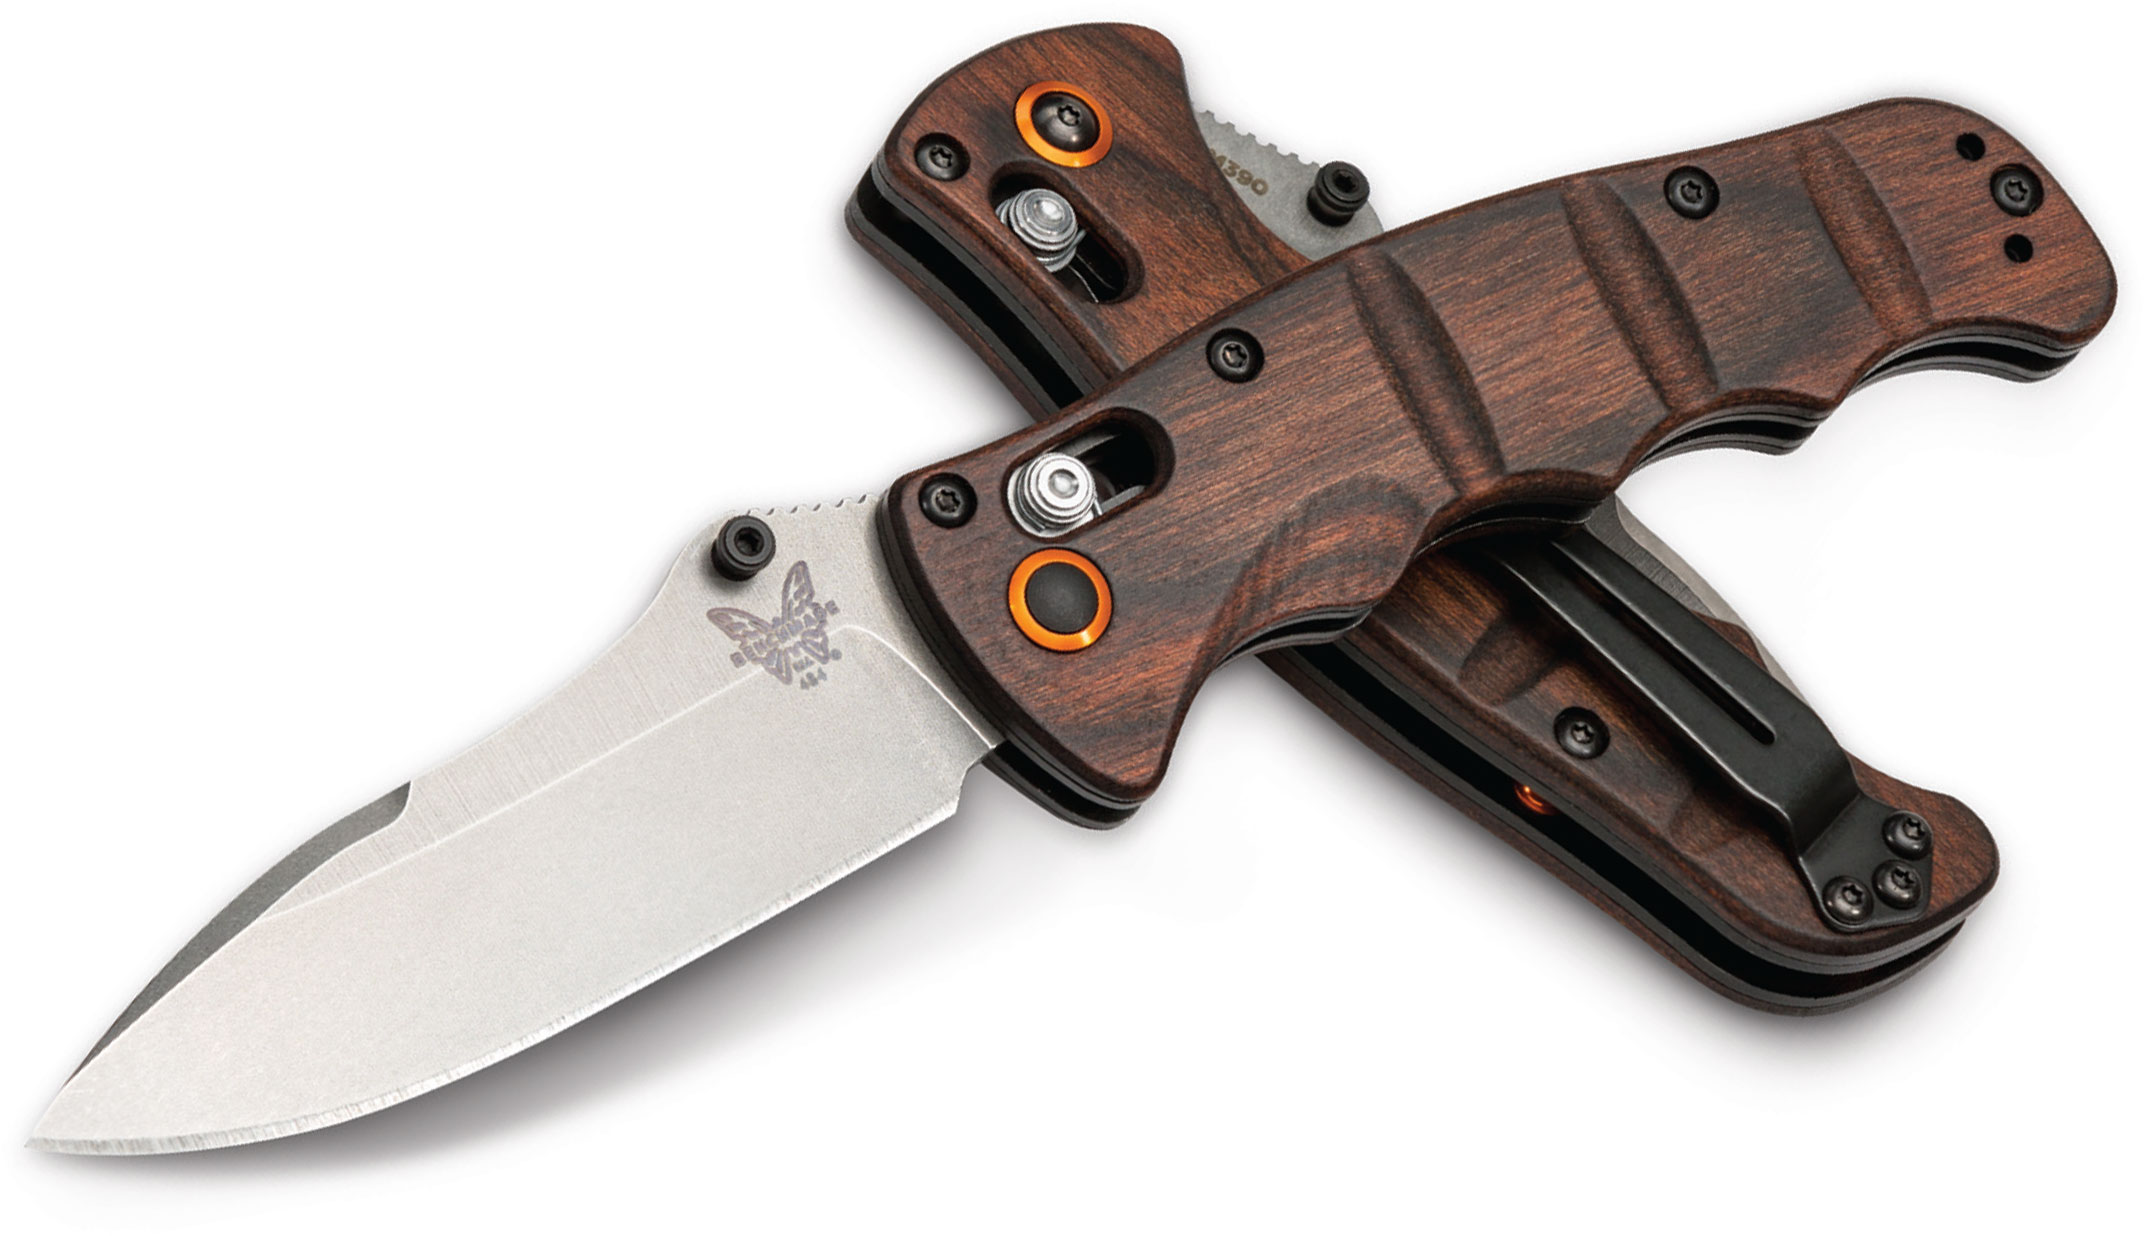 Benchmade 484-1601 Nakamura AXIS Folding Knife 3.08 inch M390 Plain Blade, Wood Handles, KnifeCenter Exclusive